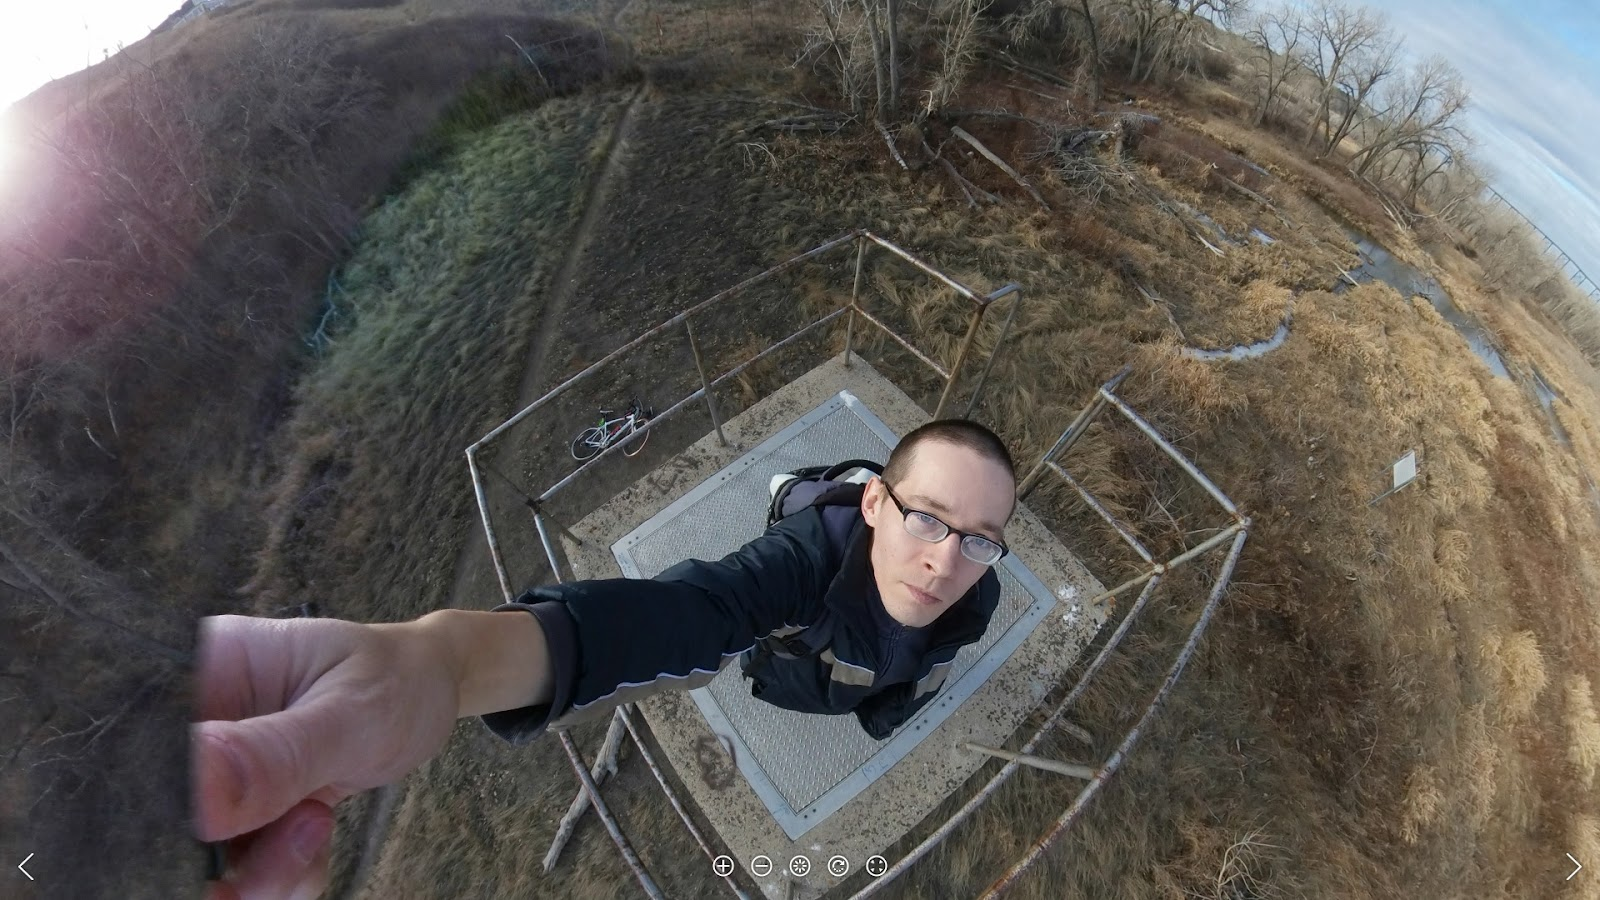 360 Photos Distorted - Google Photos Help